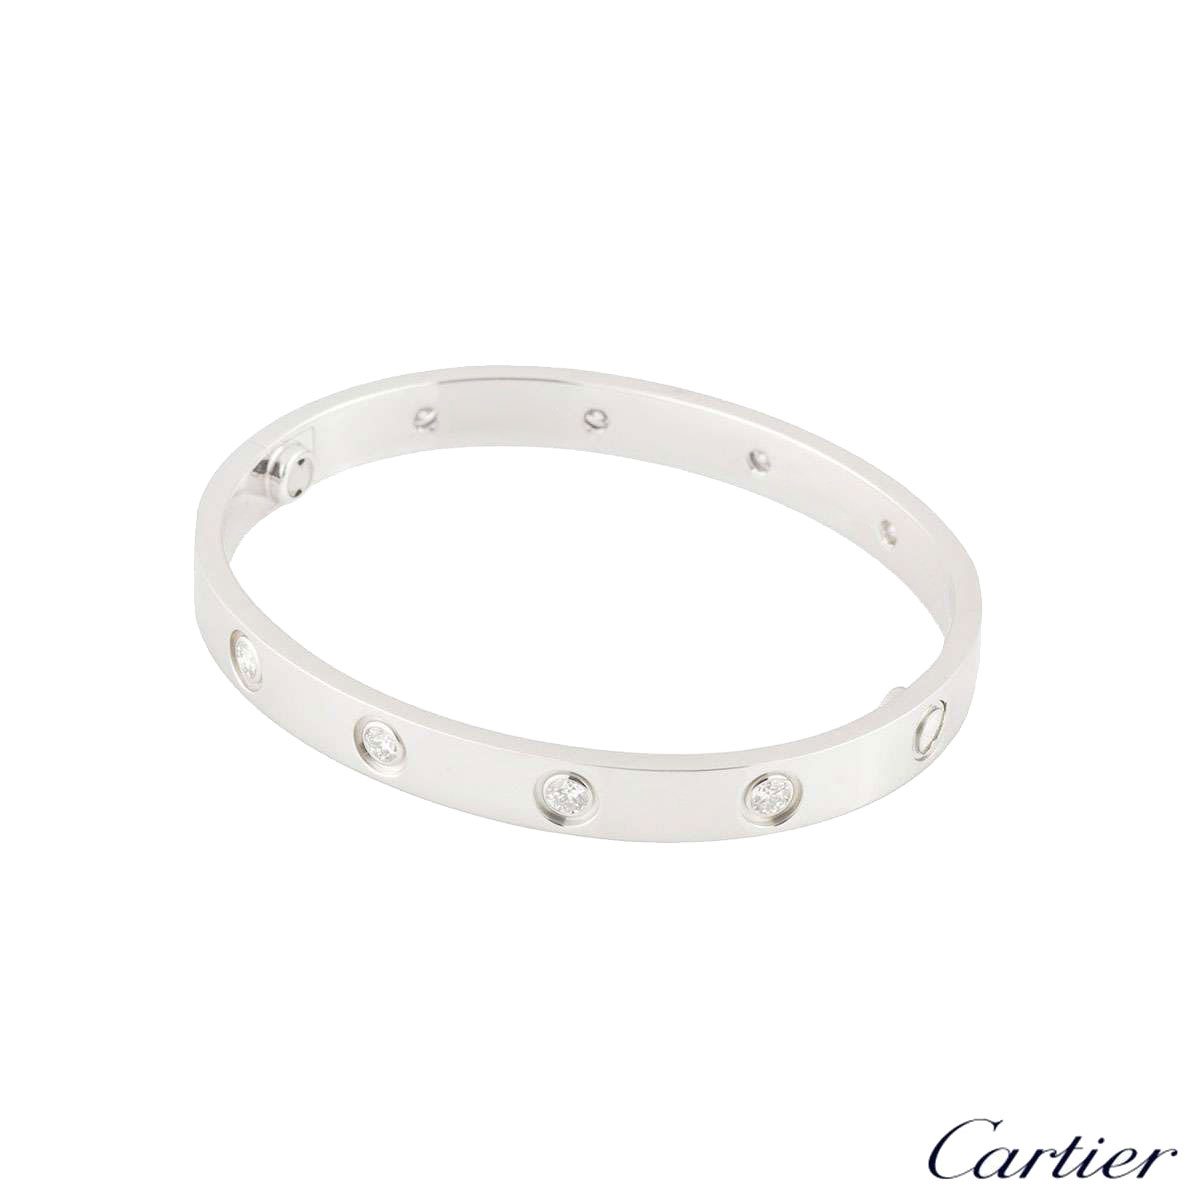 Cartier White Gold Full Diamond Love Bracelet Size 17 B6040717